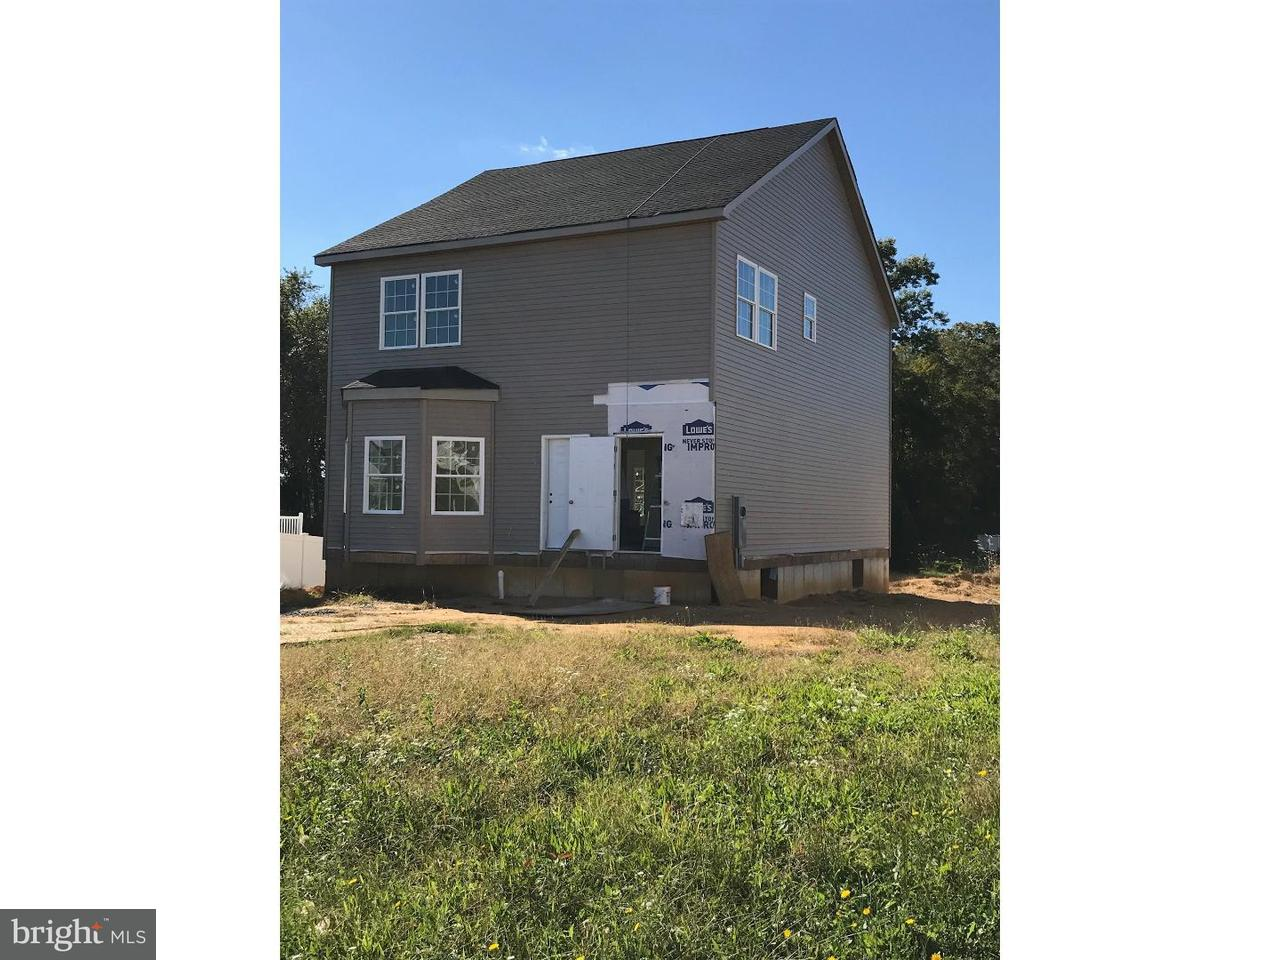 Single Family Home for Sale at 35 GARWOOD BLVD Clayton, New Jersey 08312 United States